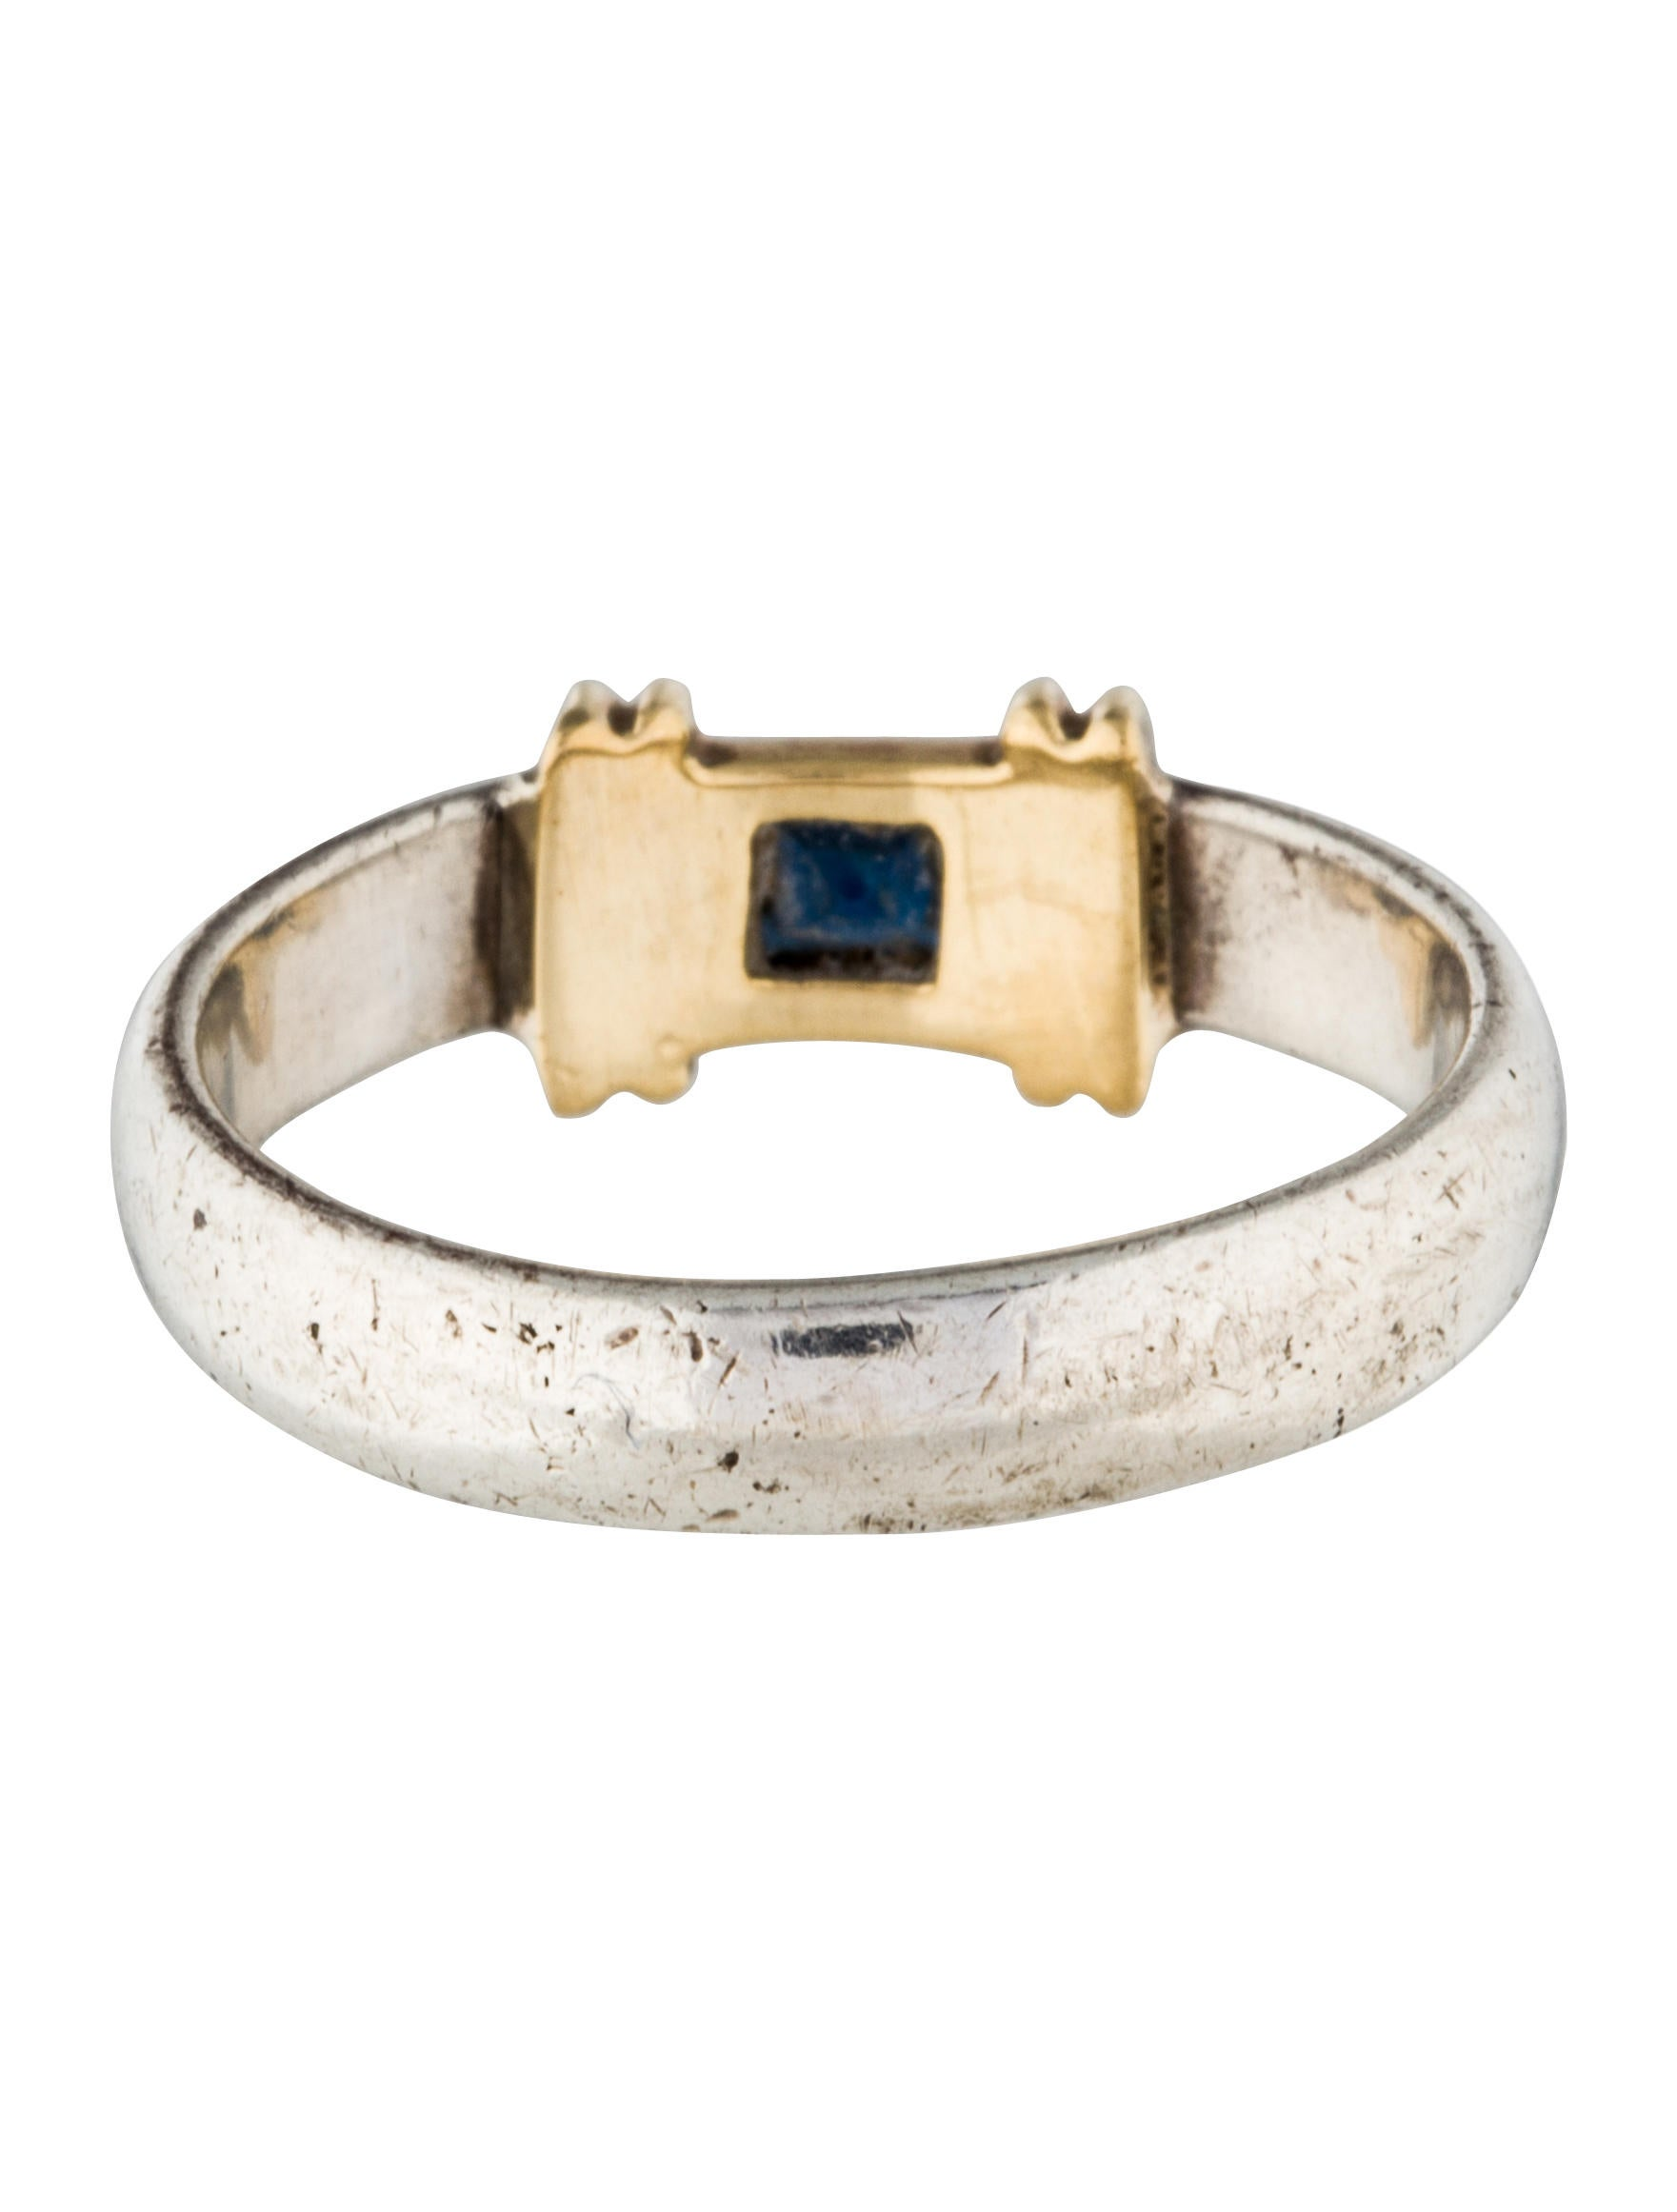 Tiffany & Co. Two-Tone Sapphire Ring - Rings